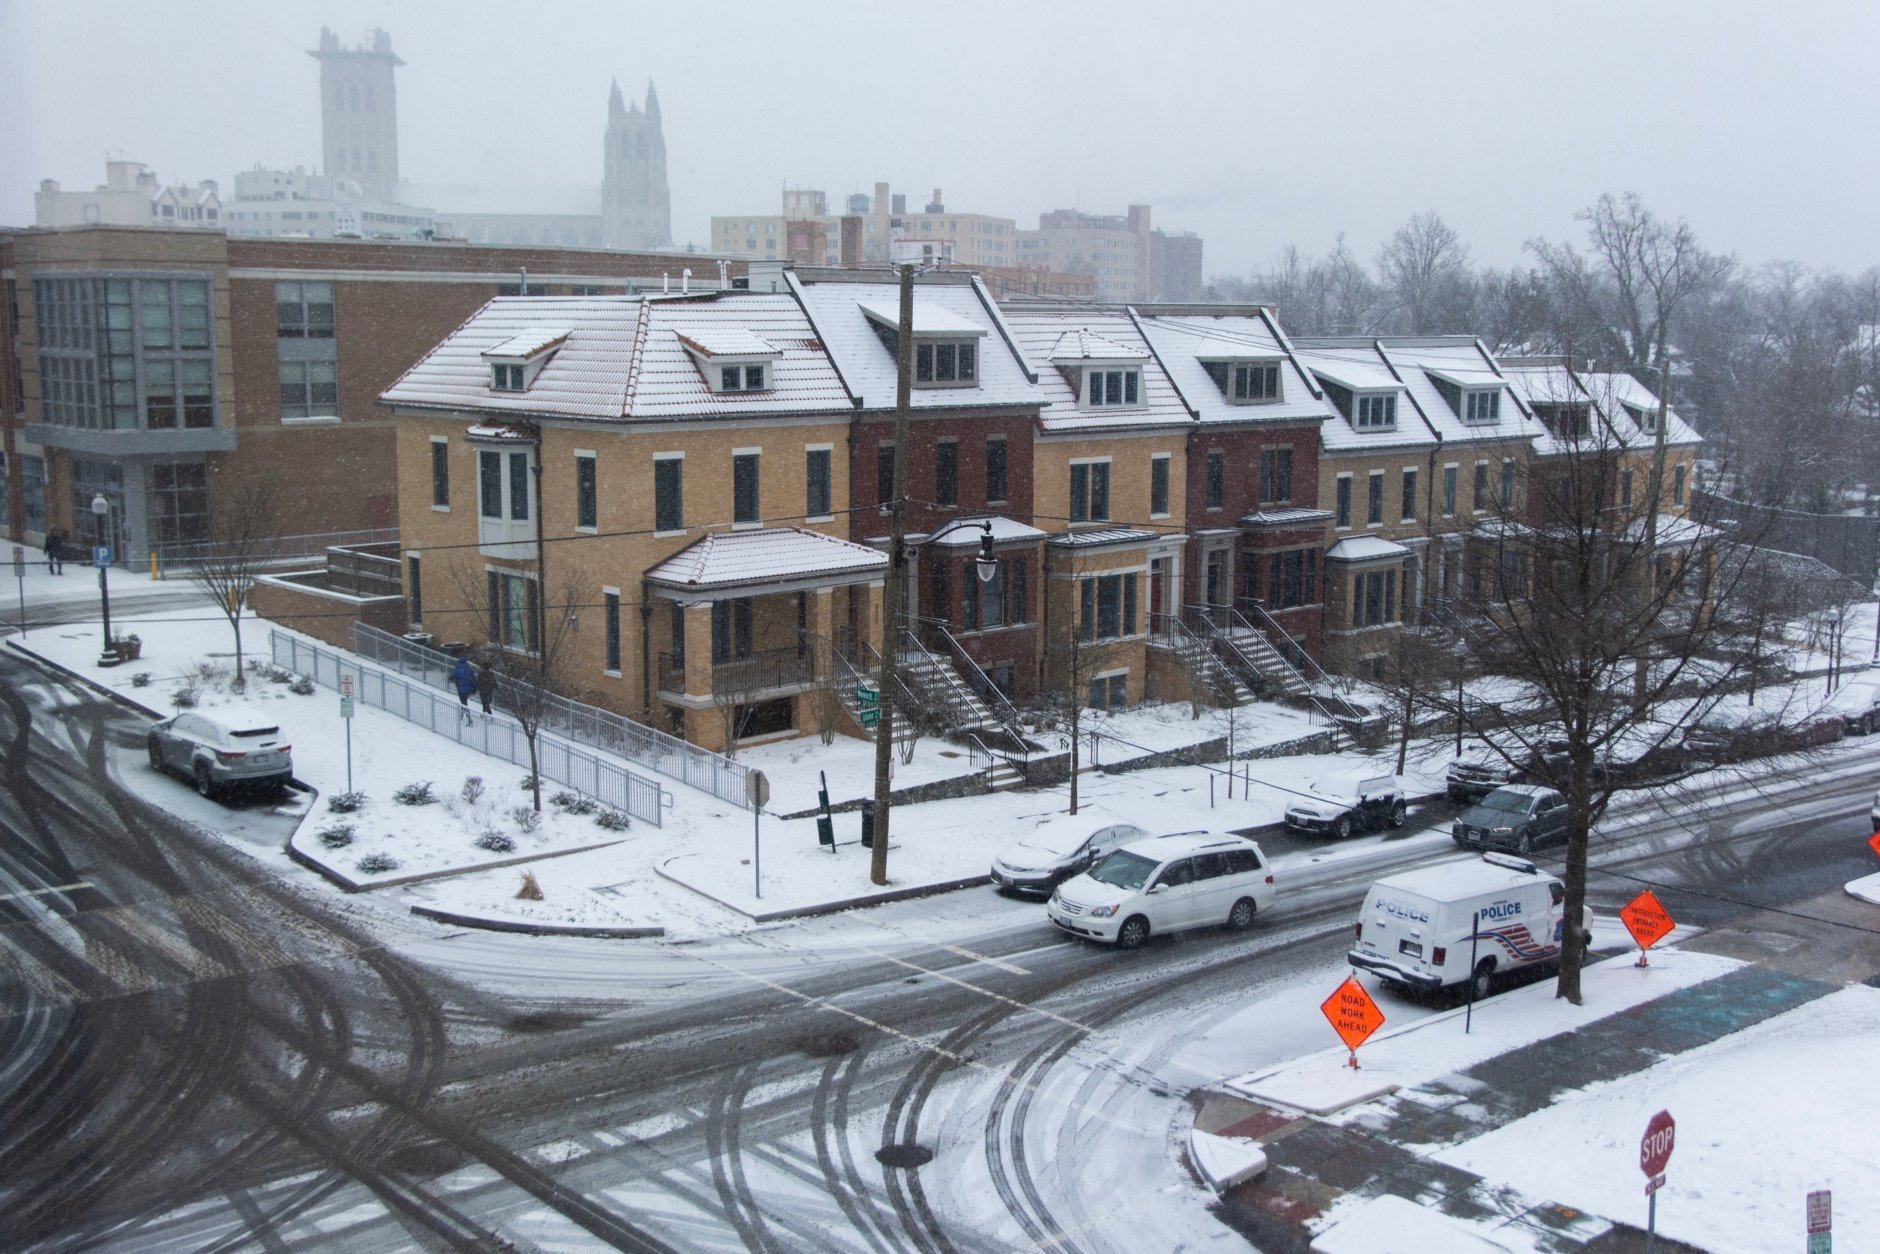 Hours after the snow started, it's starting to accumulate more and more. (WTOP/Alejendro Alvarez)